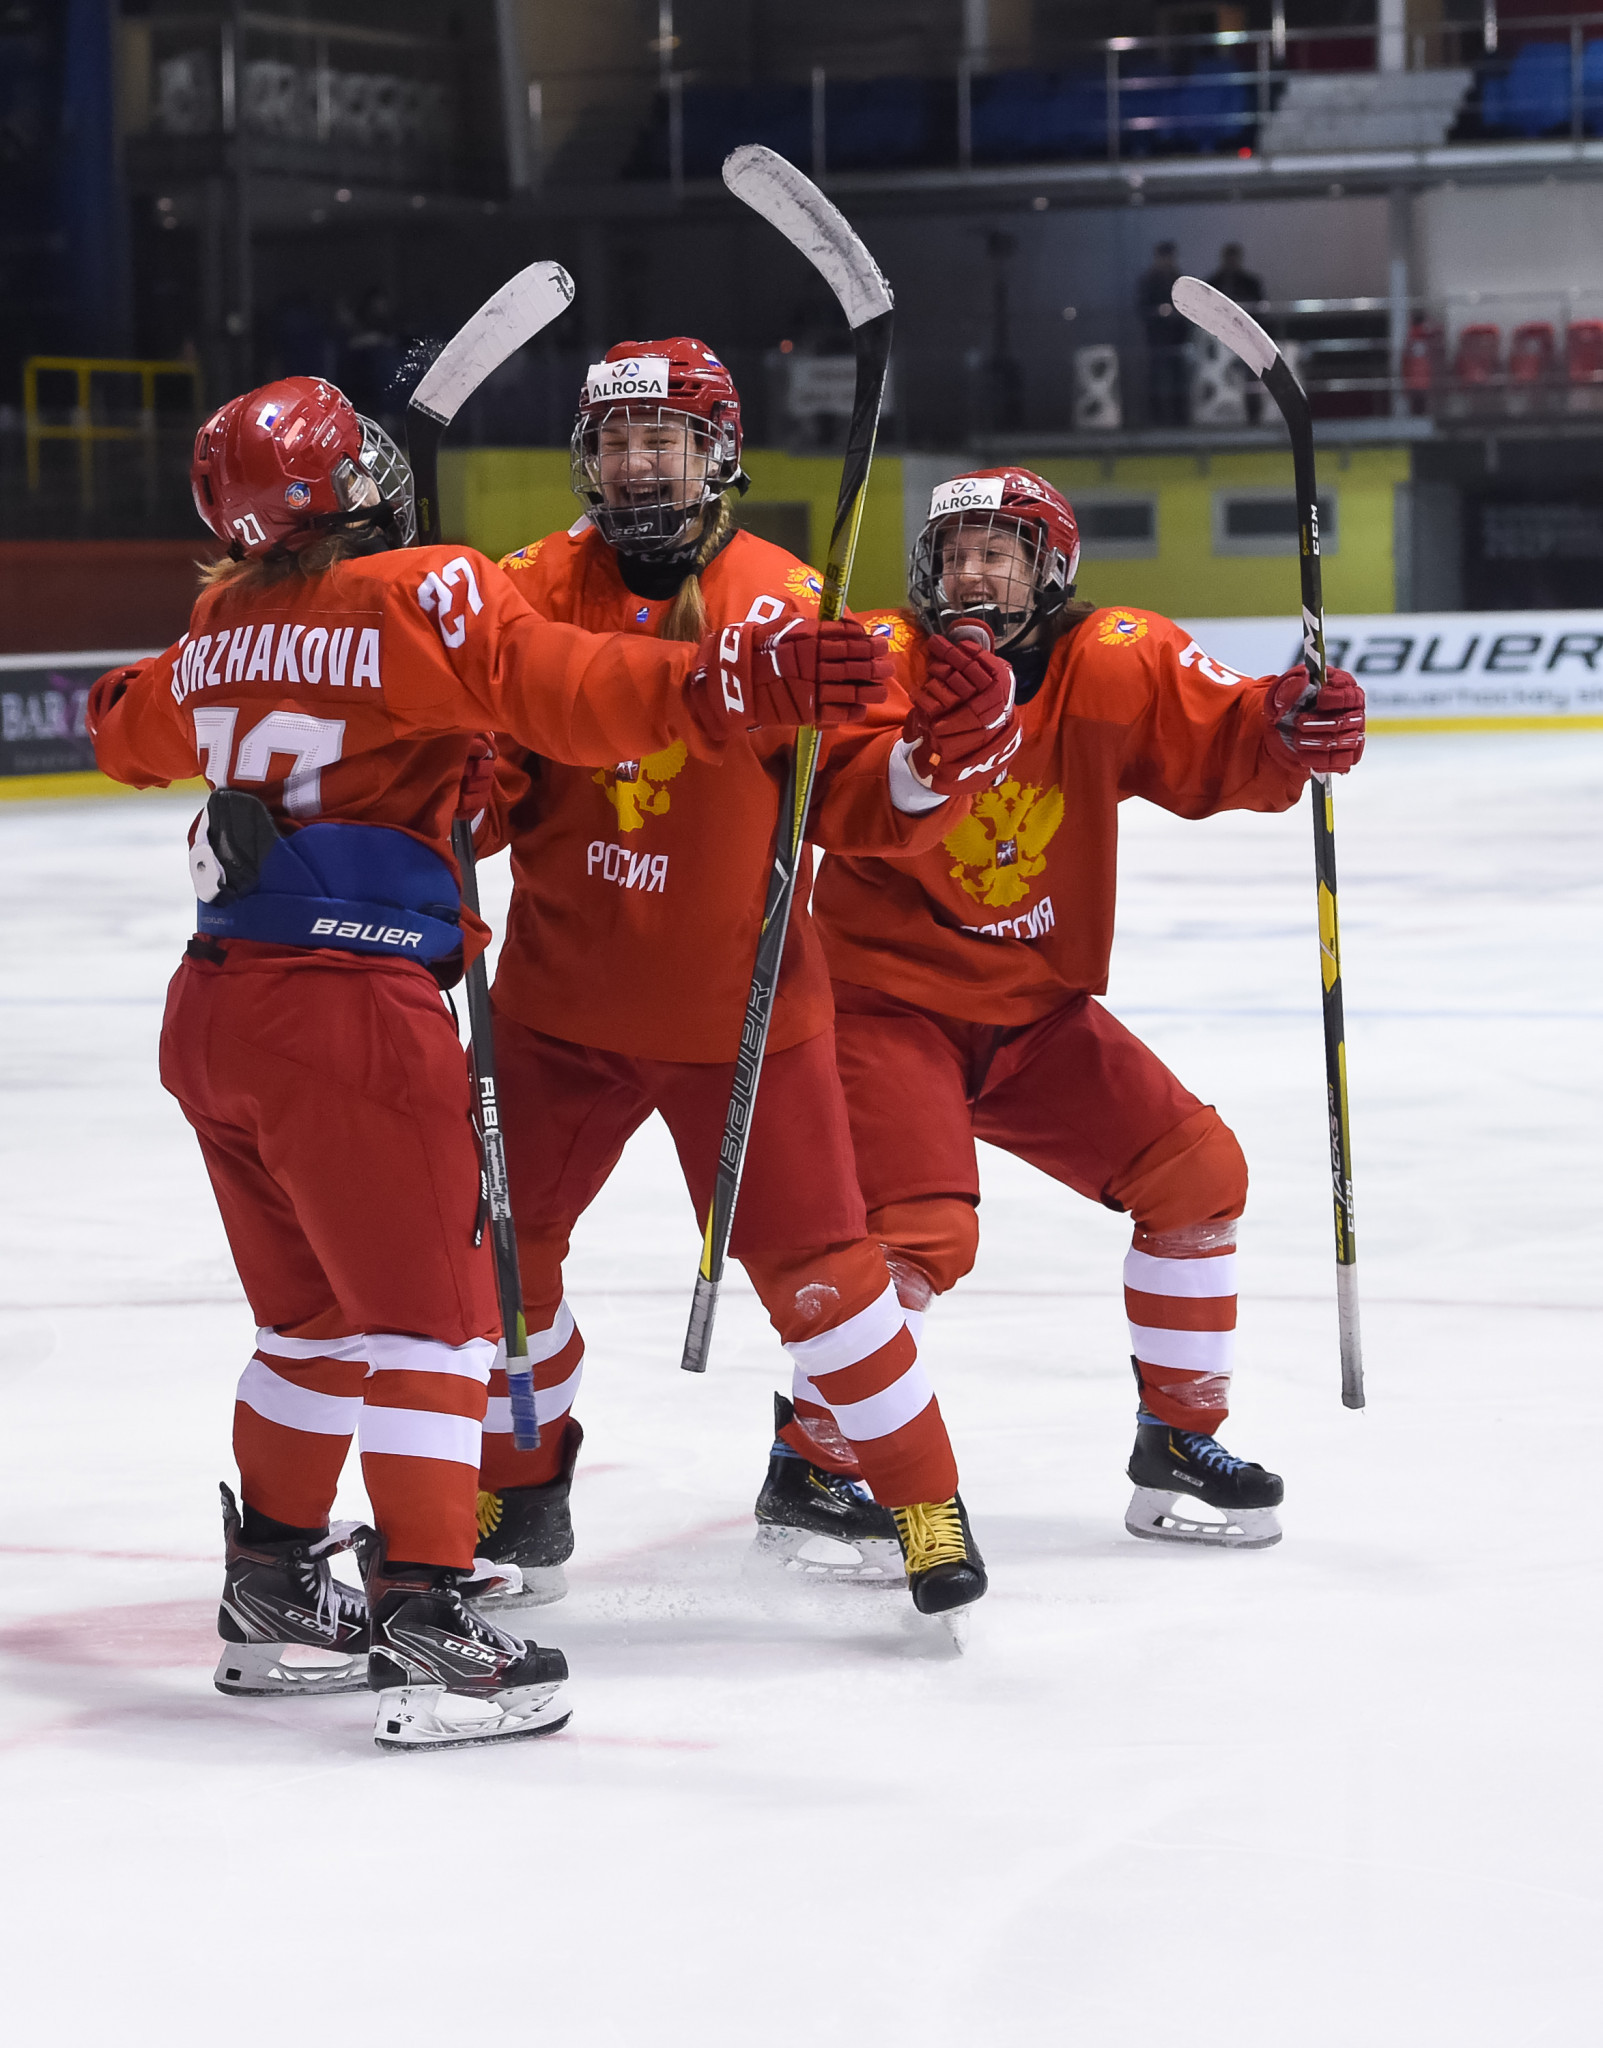 Russia reached the semi-finals of the IIHF Under-18 Women's World Championship ©IIHF